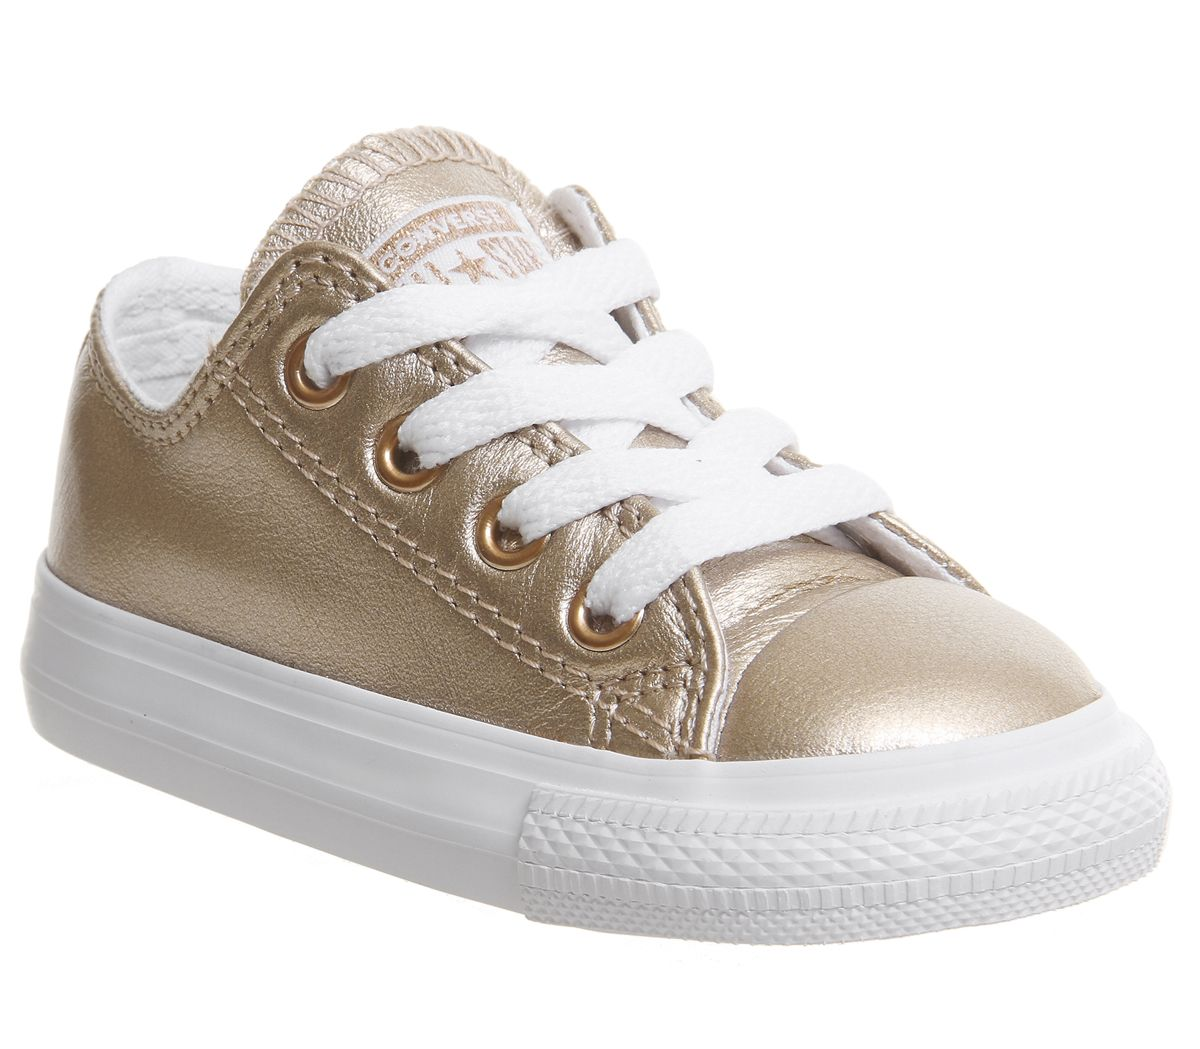 90d1e91d8 Converse All Star Ox Leather Infant Rose Gold Metallic Exclusive ...